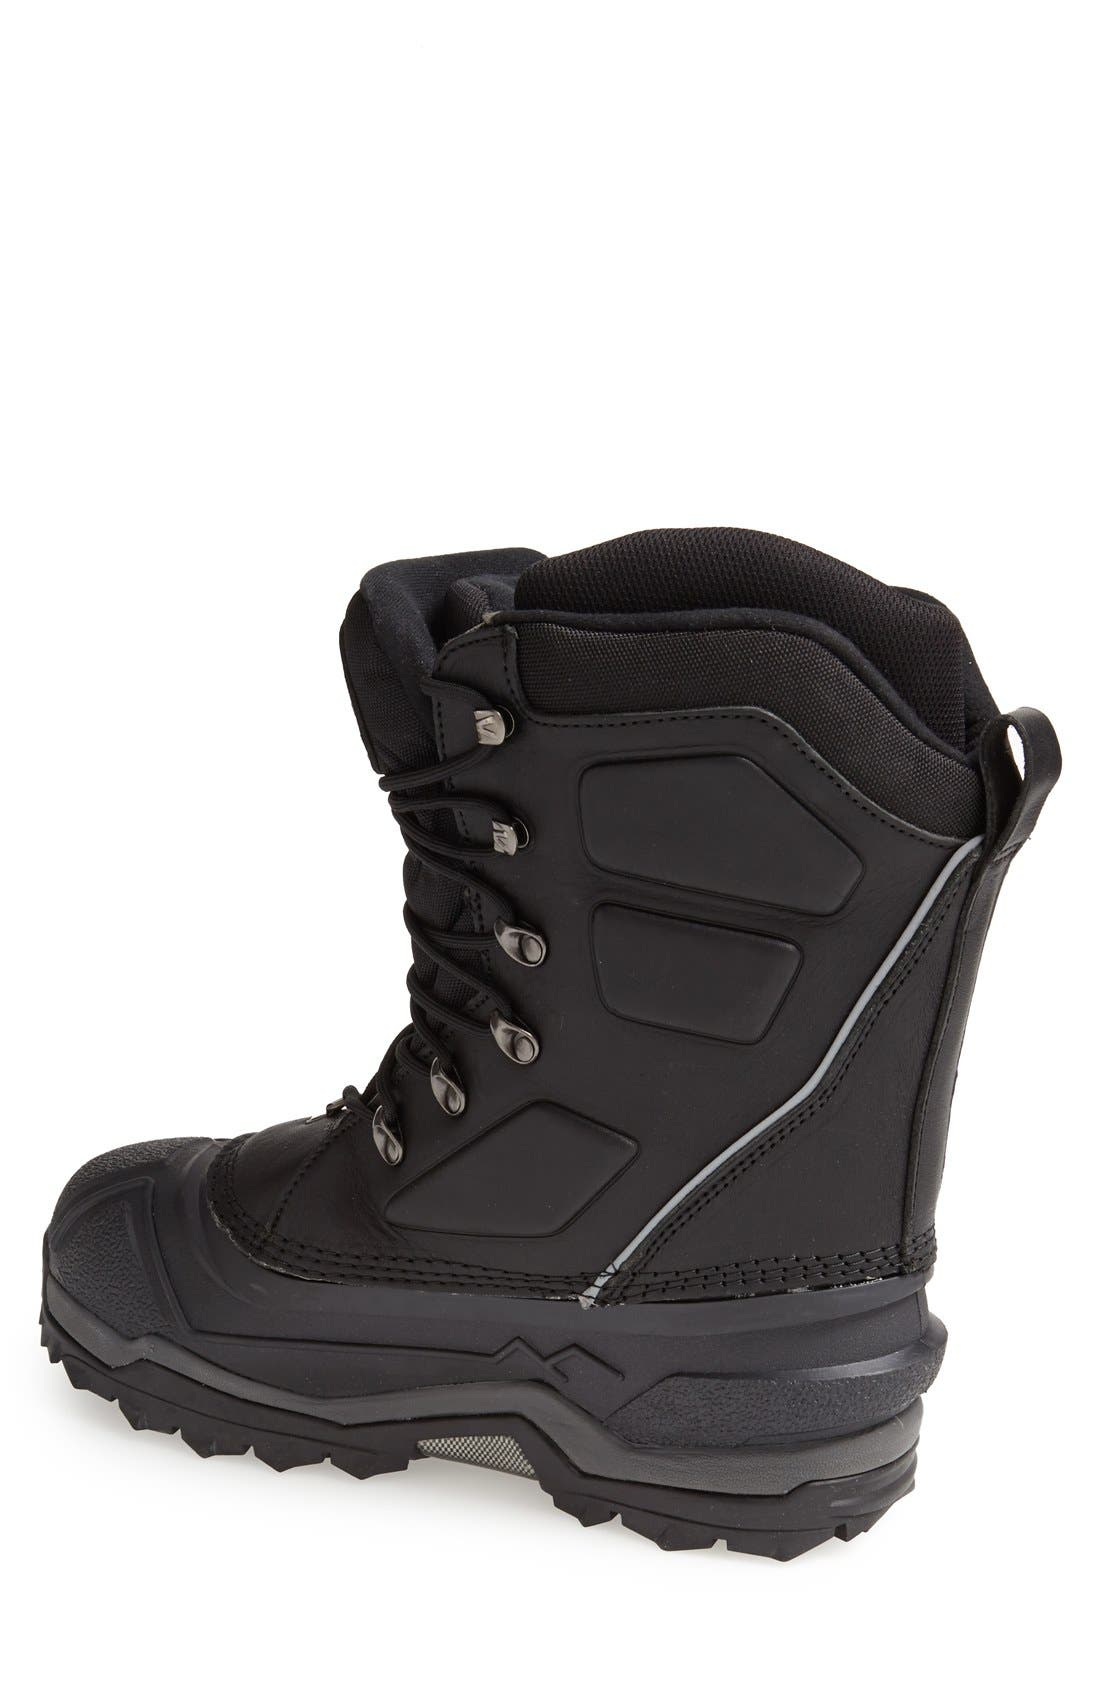 Alternate Image 3  - Baffin 'Evolution' Snow Boot